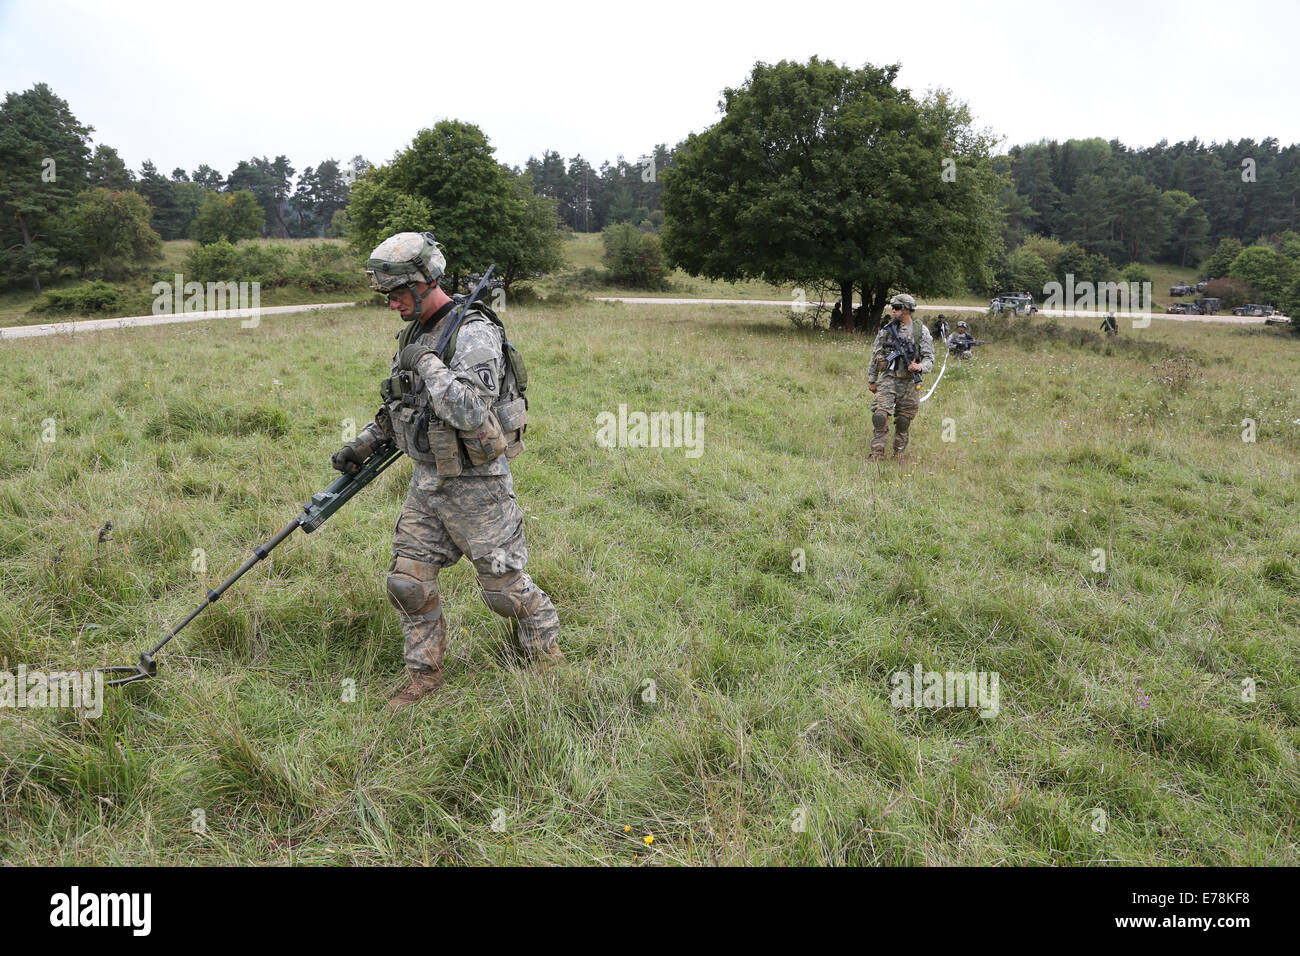 A U.S. Soldier with the 173rd Airborne Brigade Combat Team use a metal detector to safely move through a simulated - Stock Image